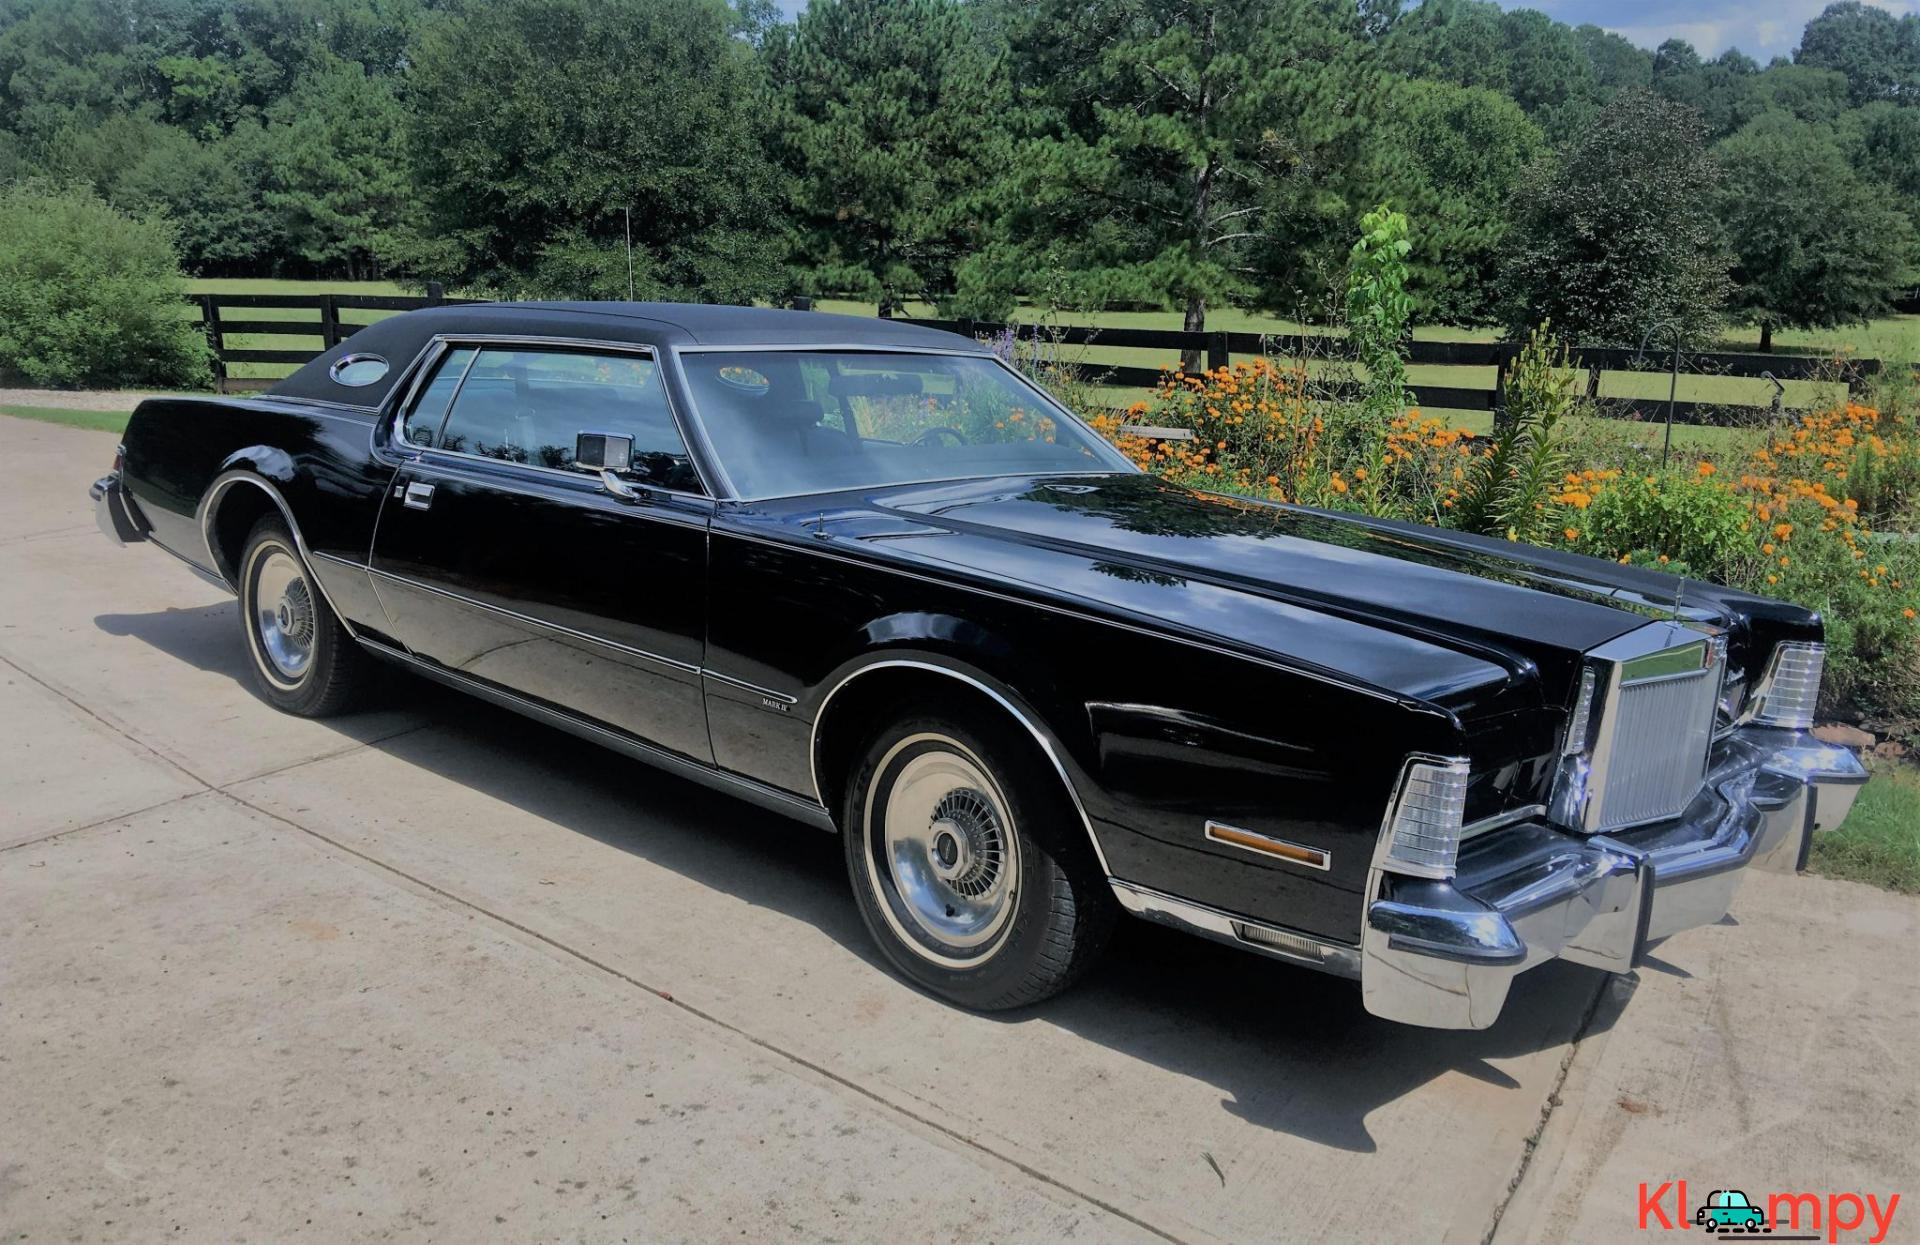 1974 Lincoln Continental Mark IV Coupe V8 - 4/20